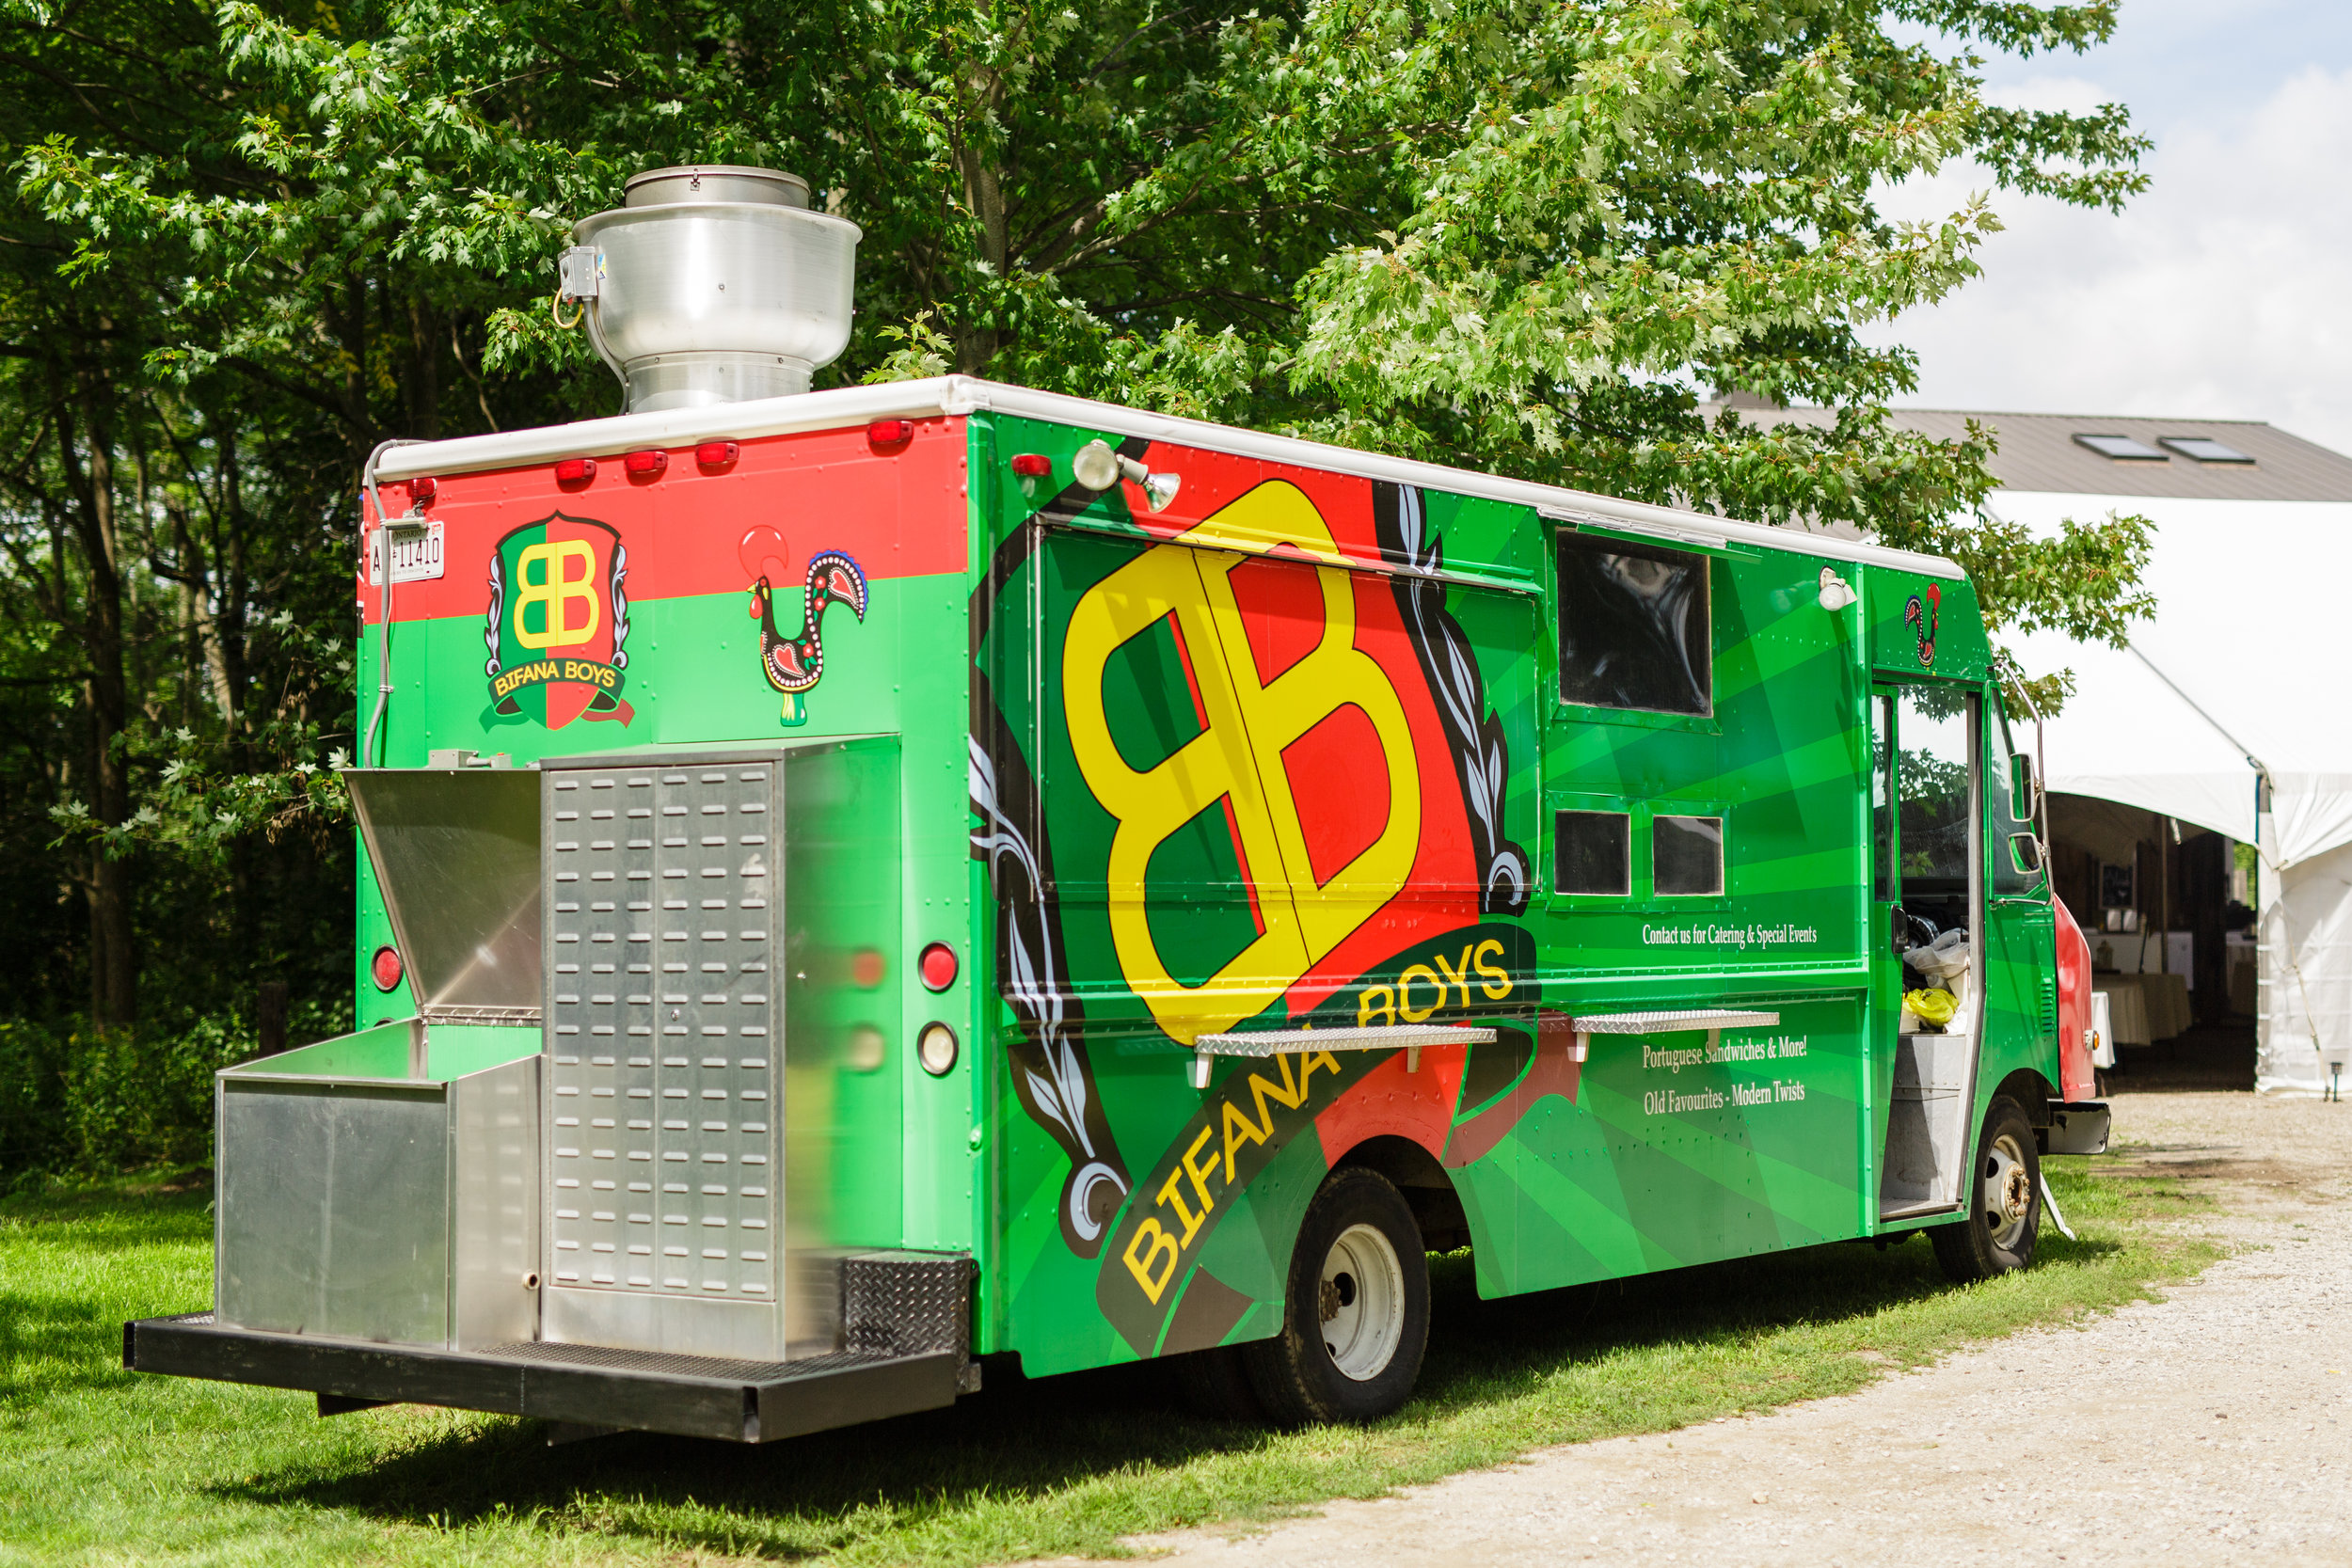 Bifana Boys Food Truck & Catering